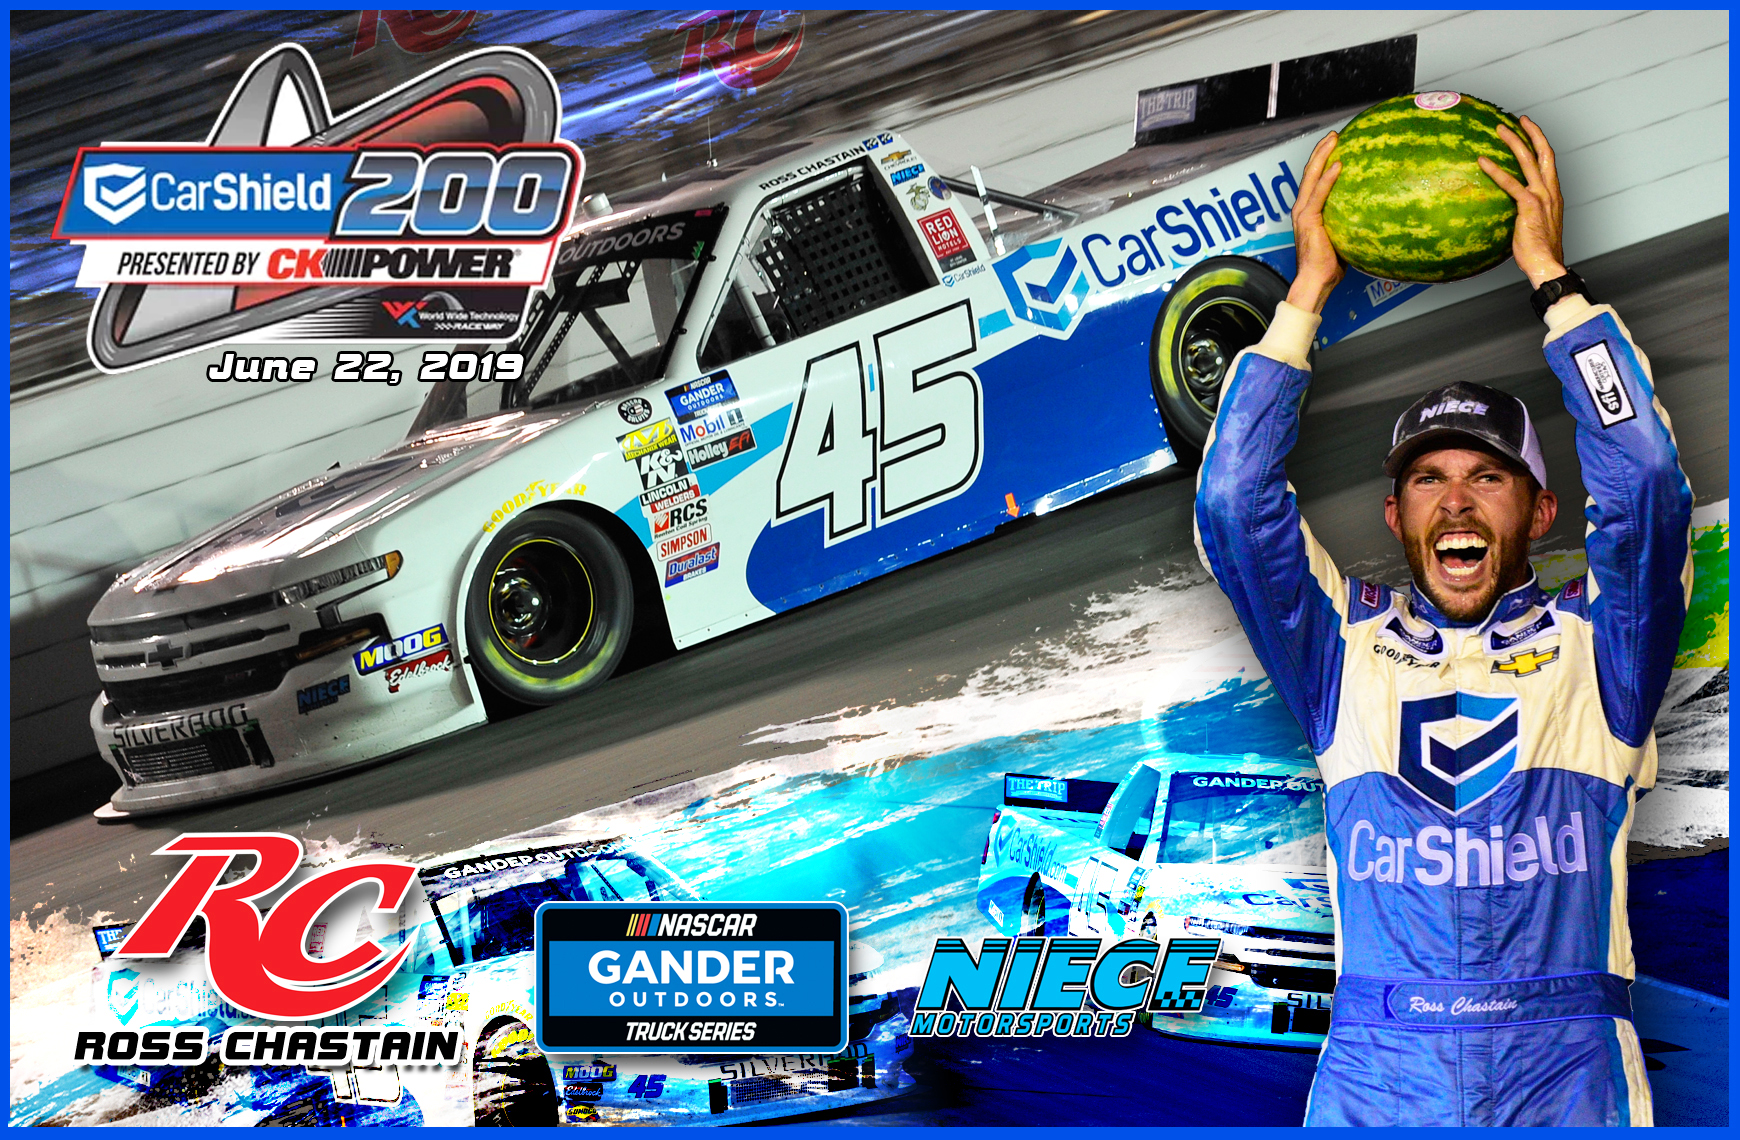 Ross Chastain Hero Cards